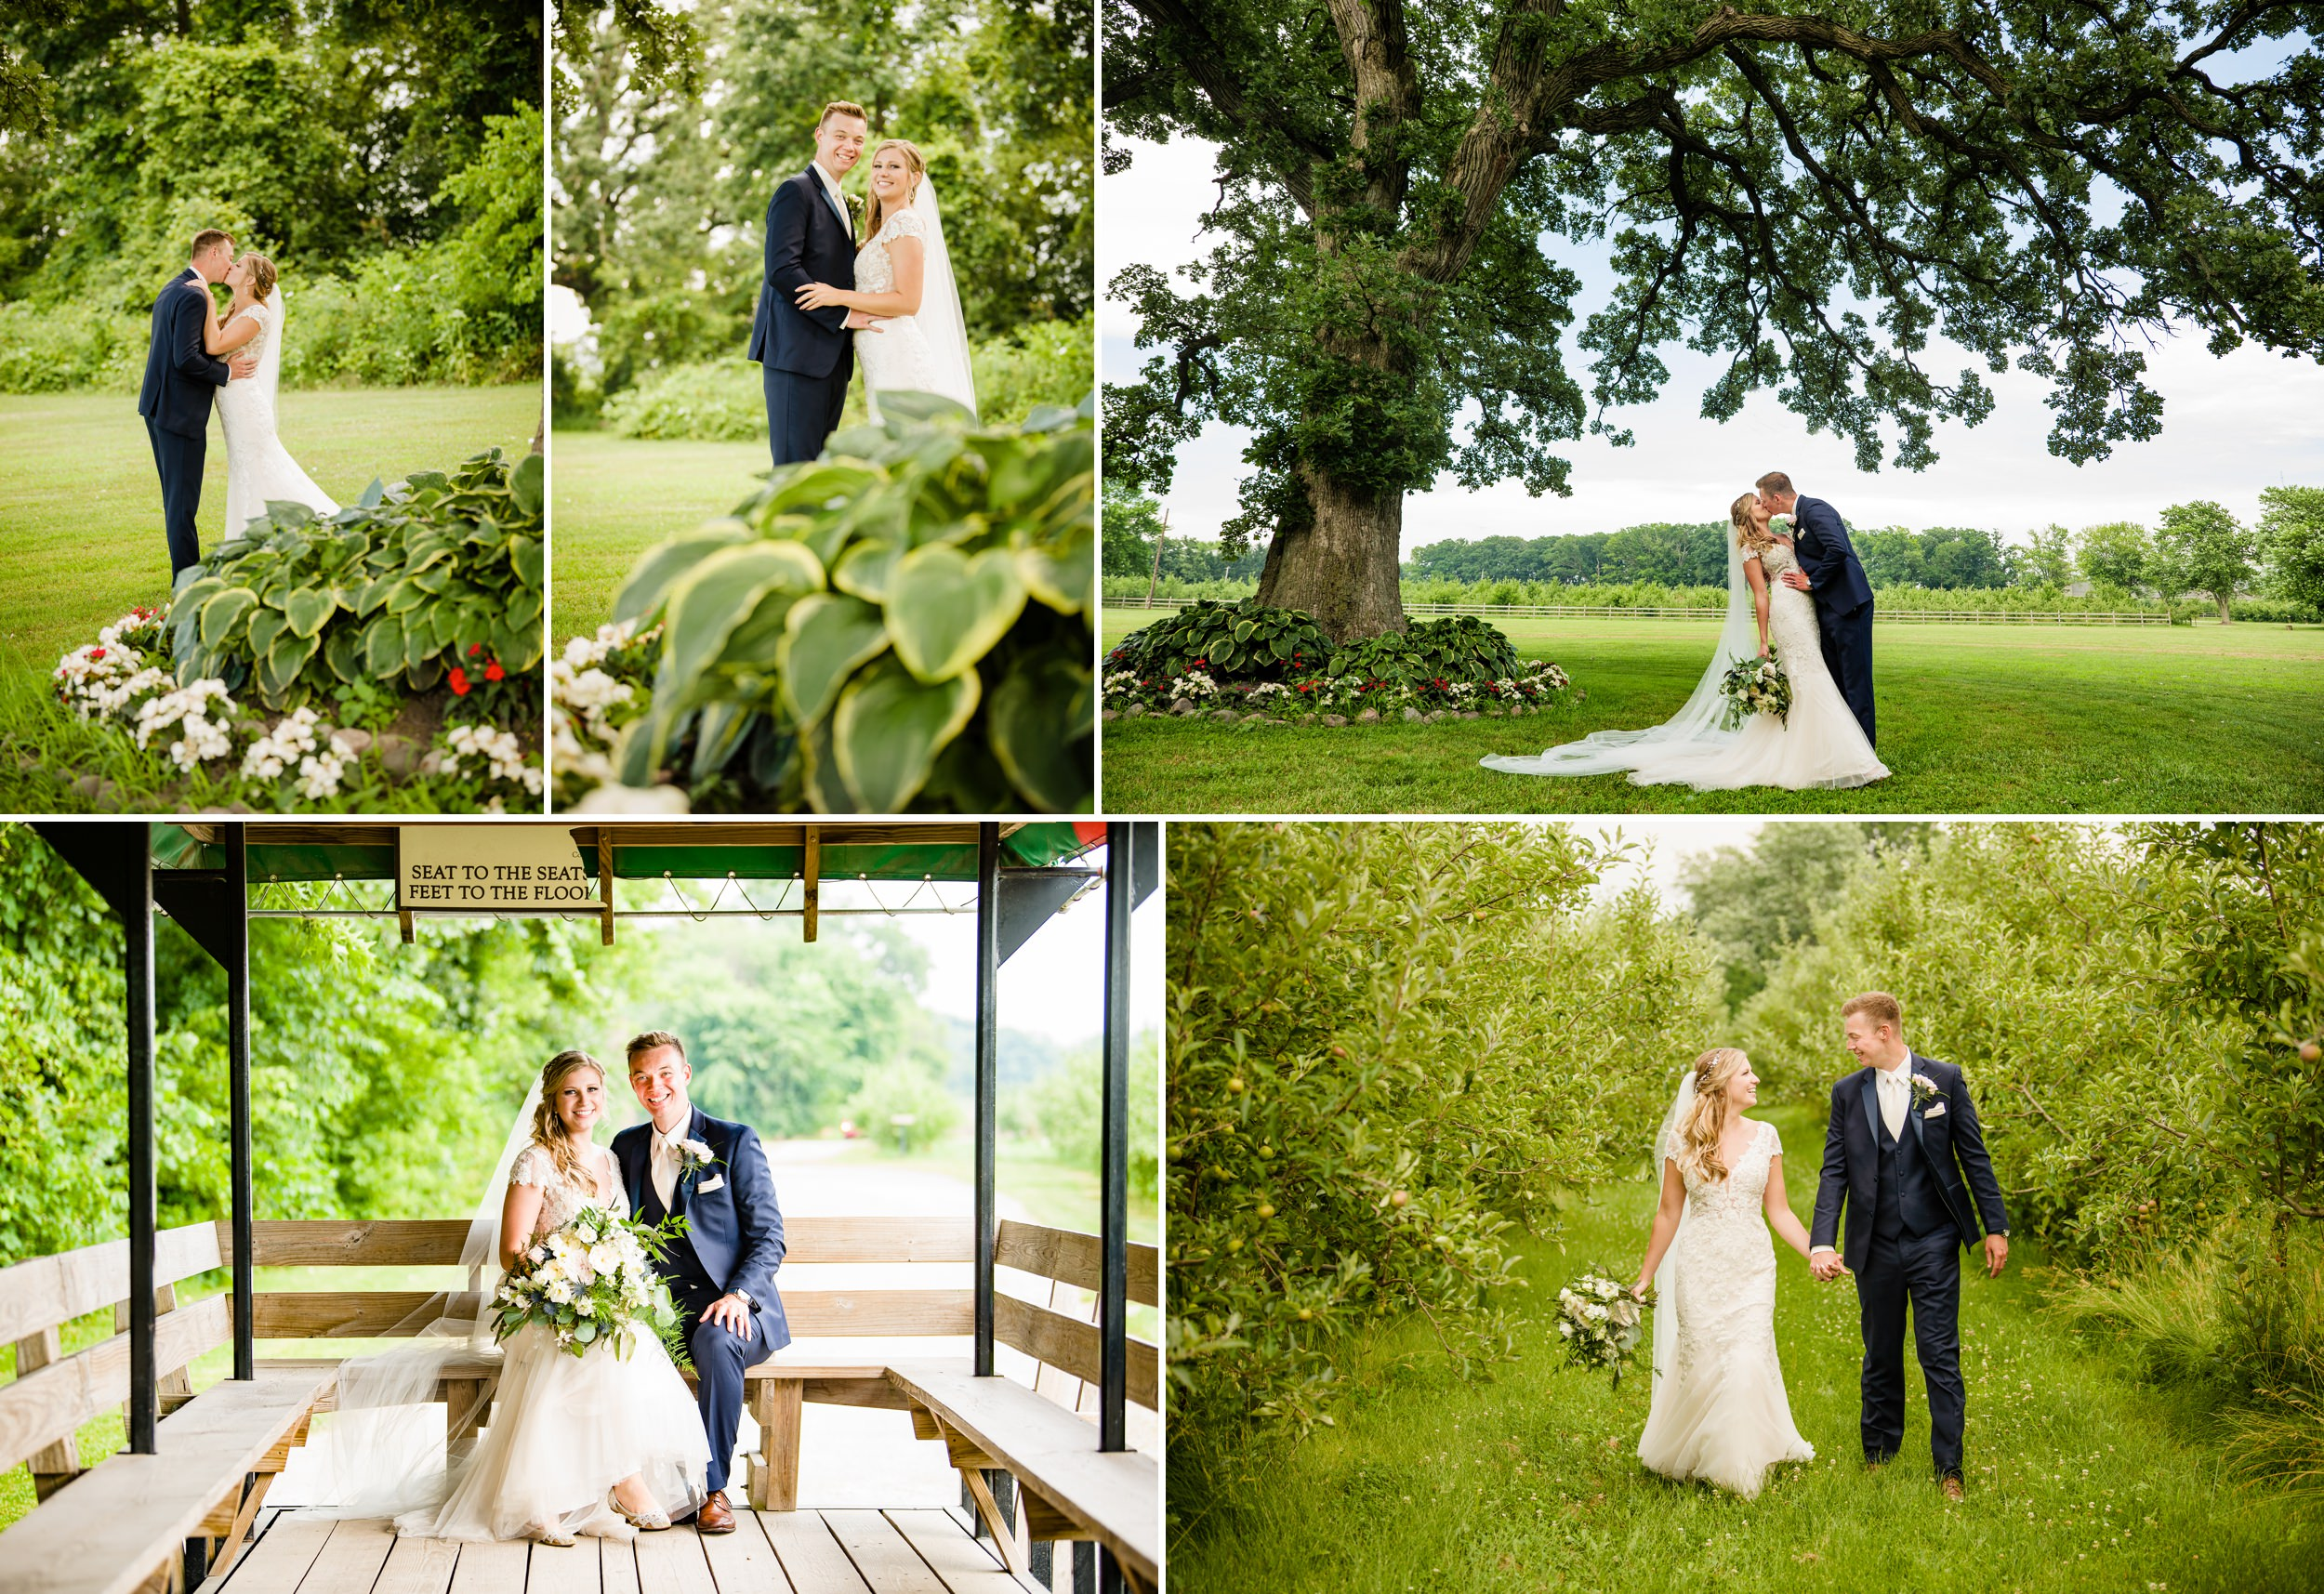 Summer wedding photos at County Line Orchard.